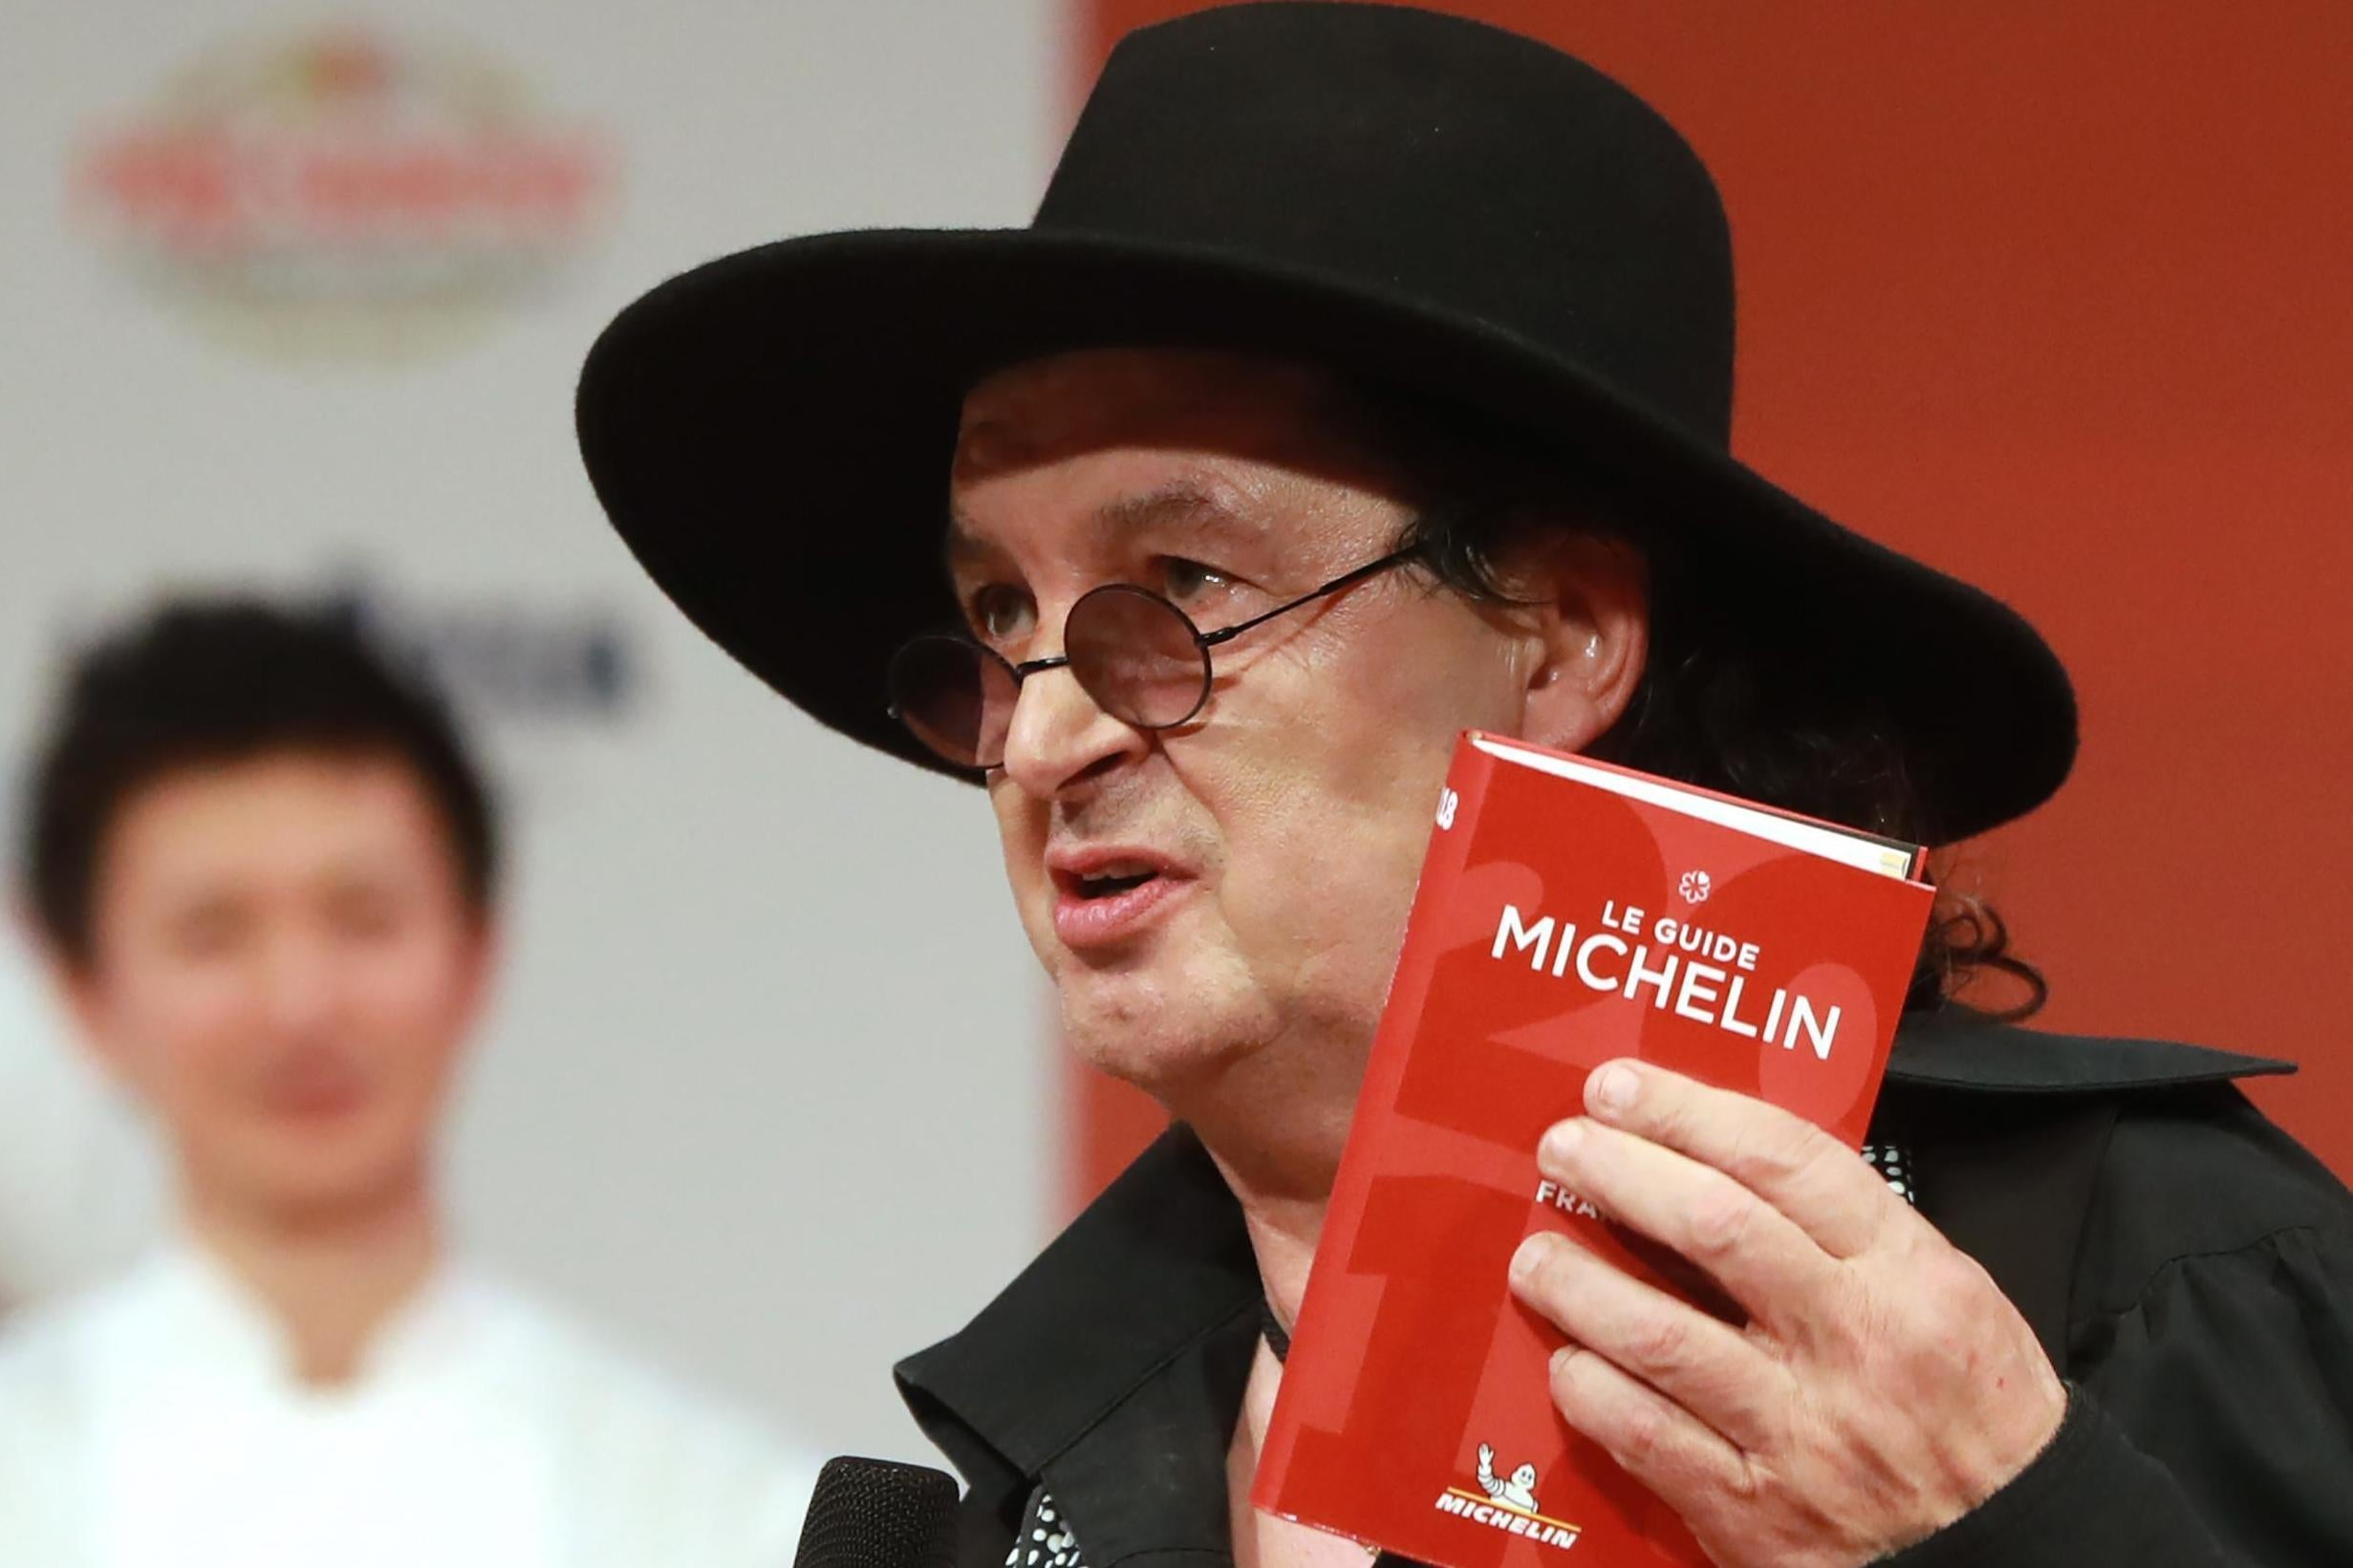 French chef demands to be removed from Michelin Guide after losing a star 1